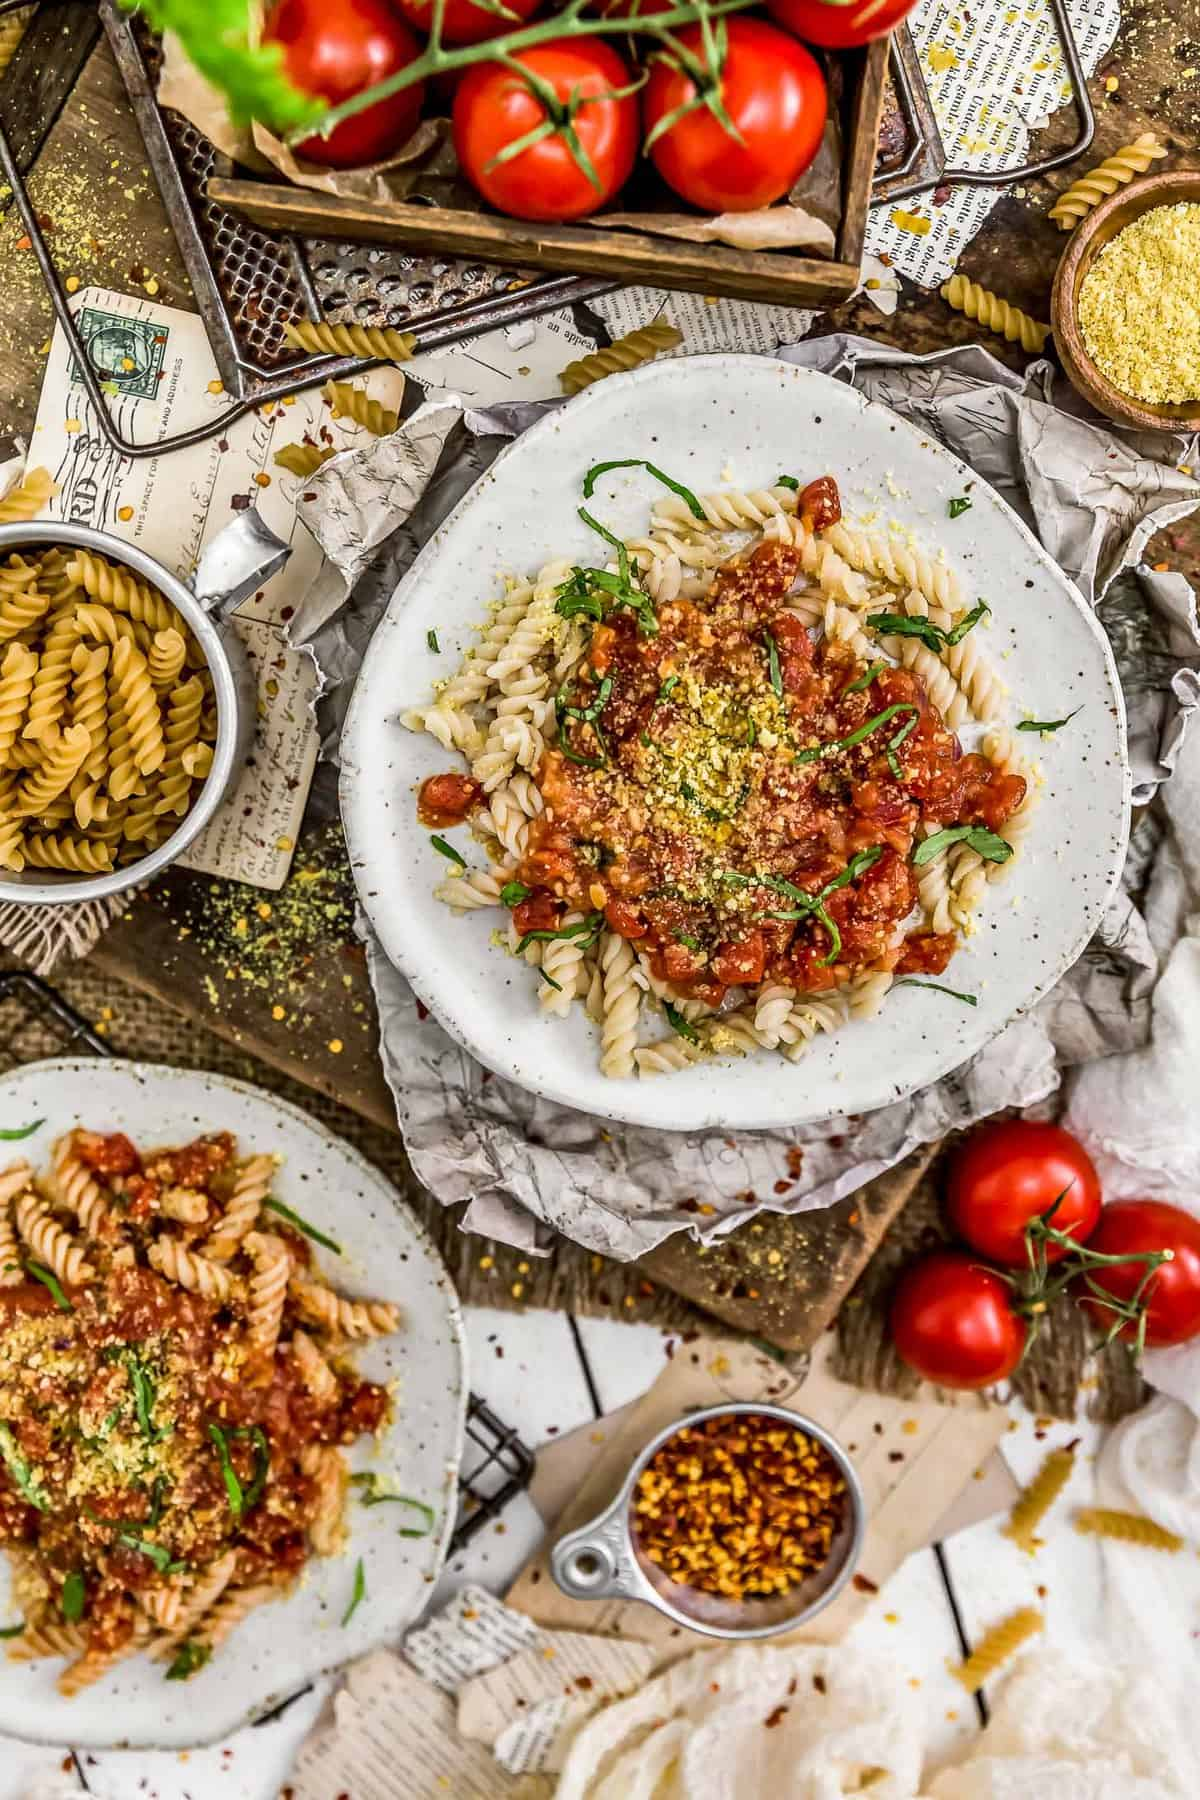 Tablescape of Spicy Arrabbiata Sauce with pasta